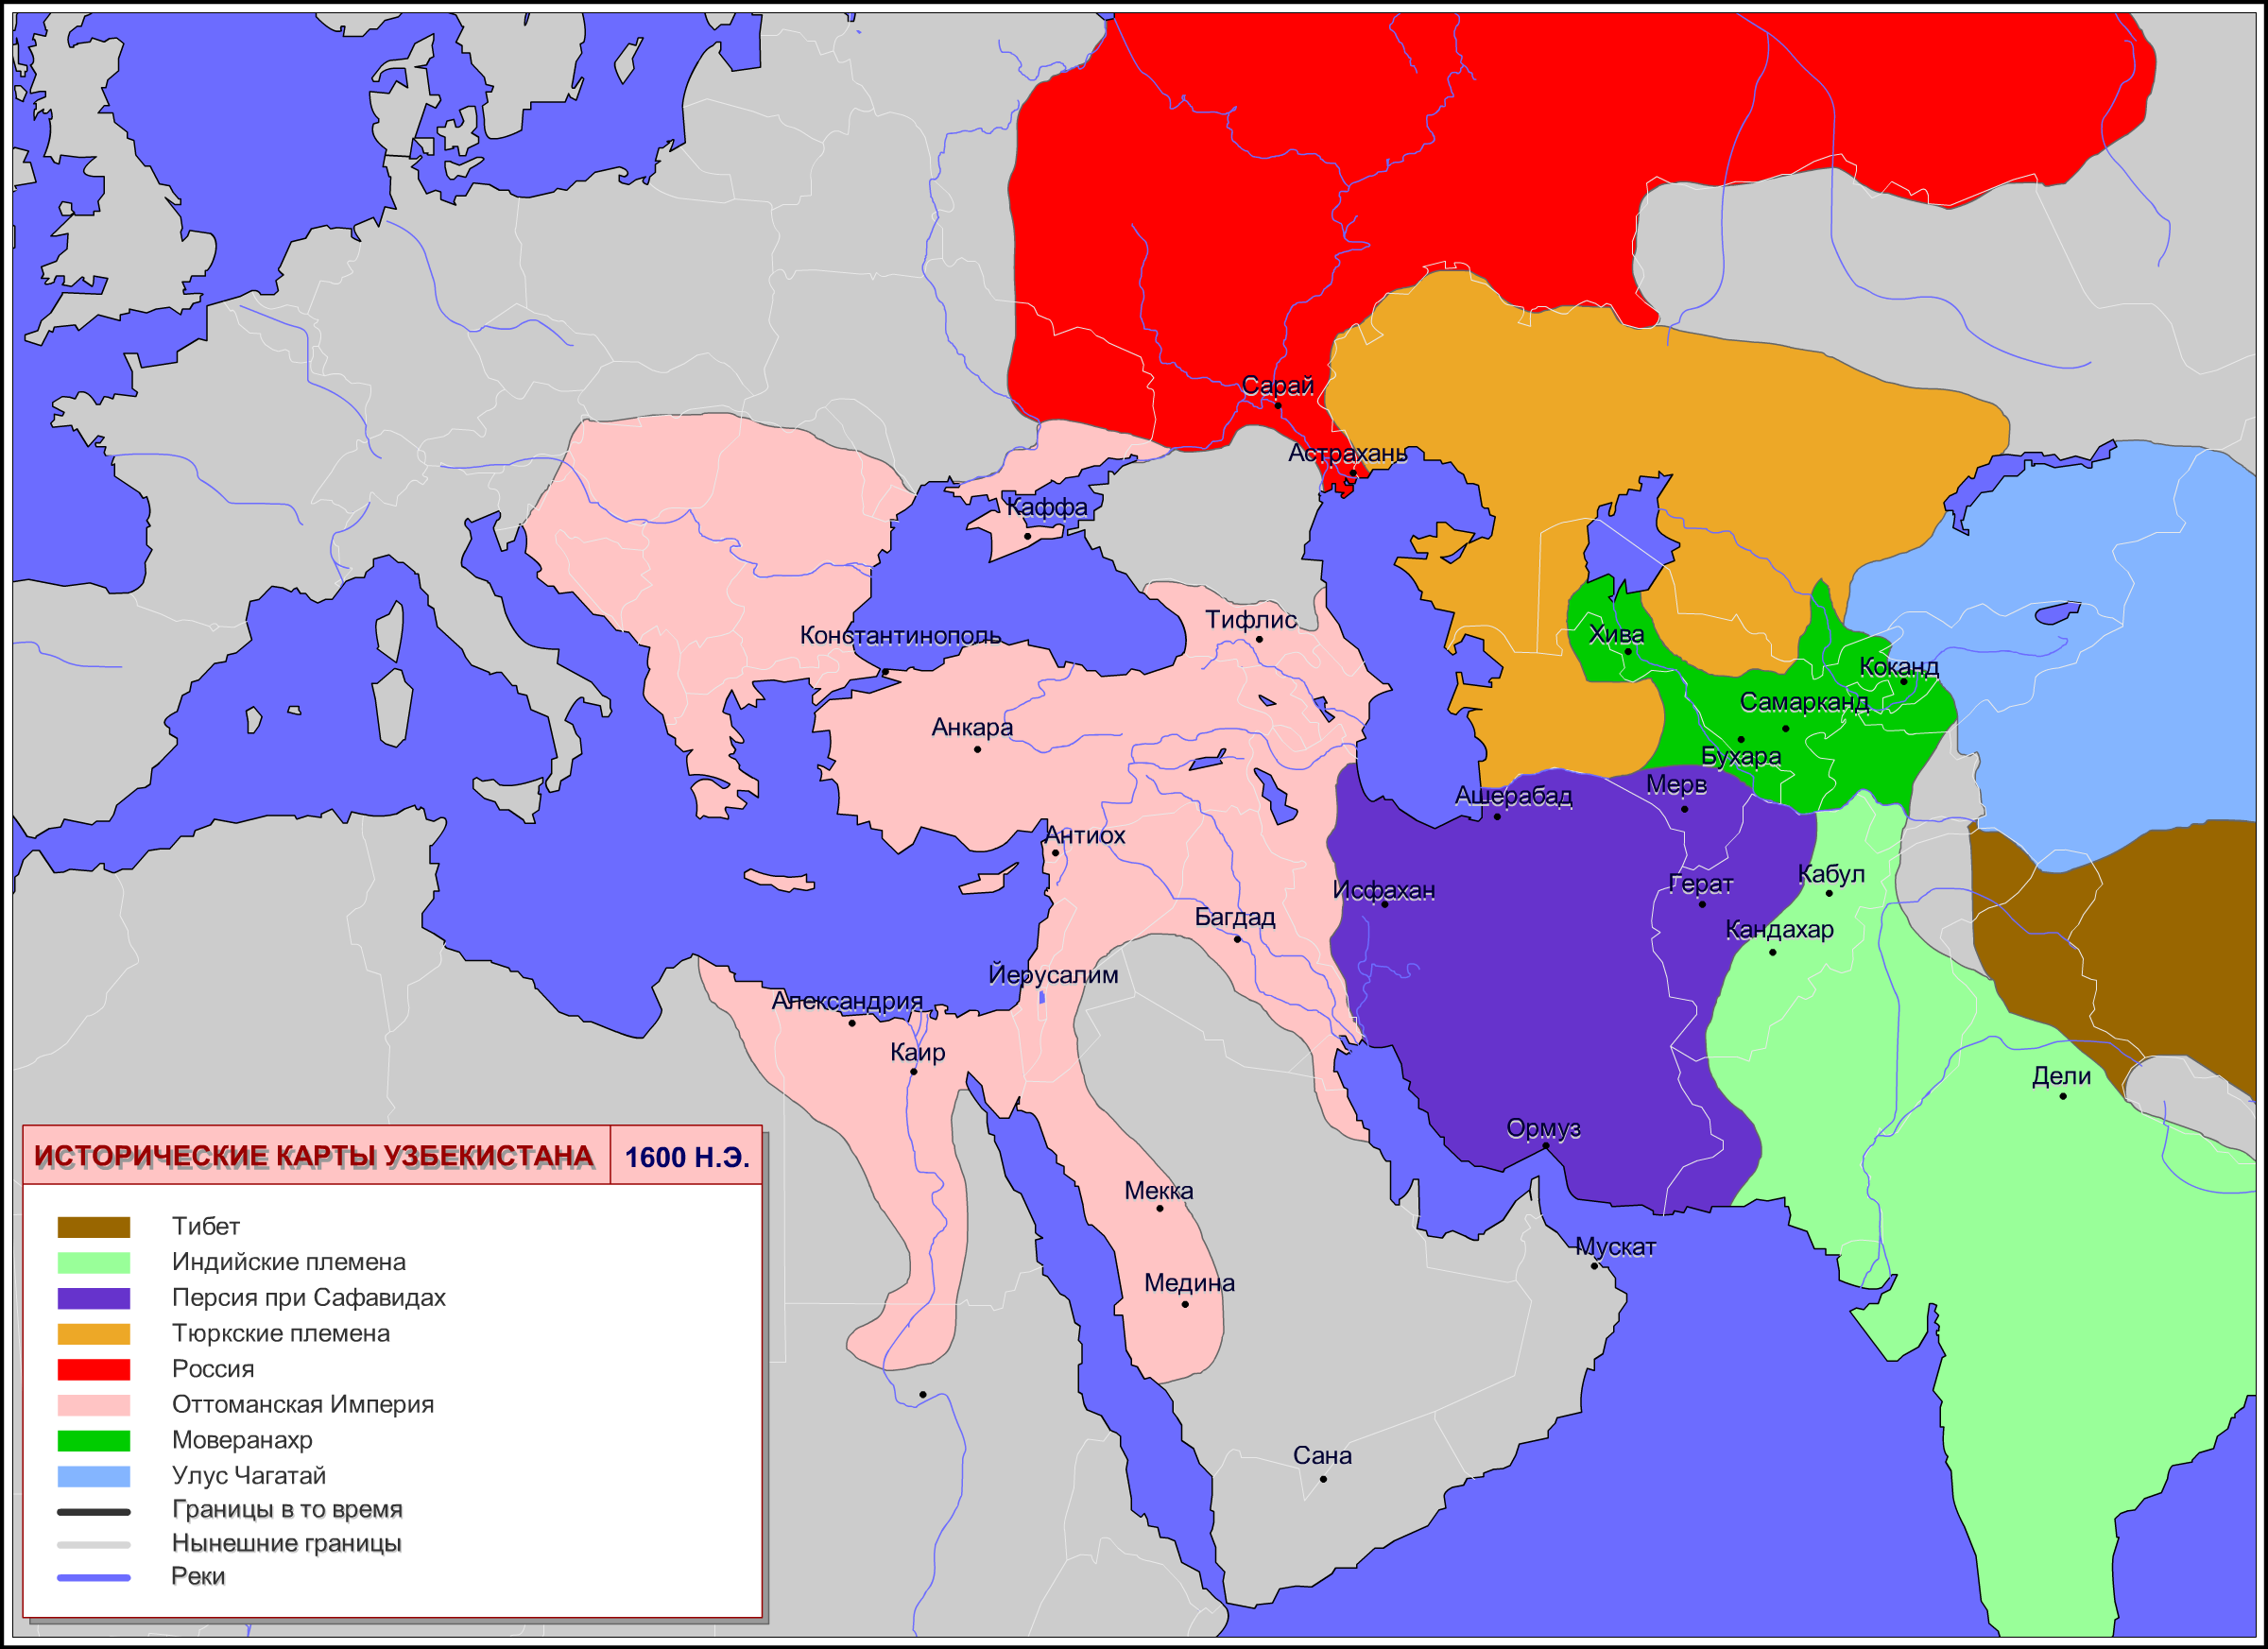 File:Political map of West Asia 1600.png - Wikimedia Commons